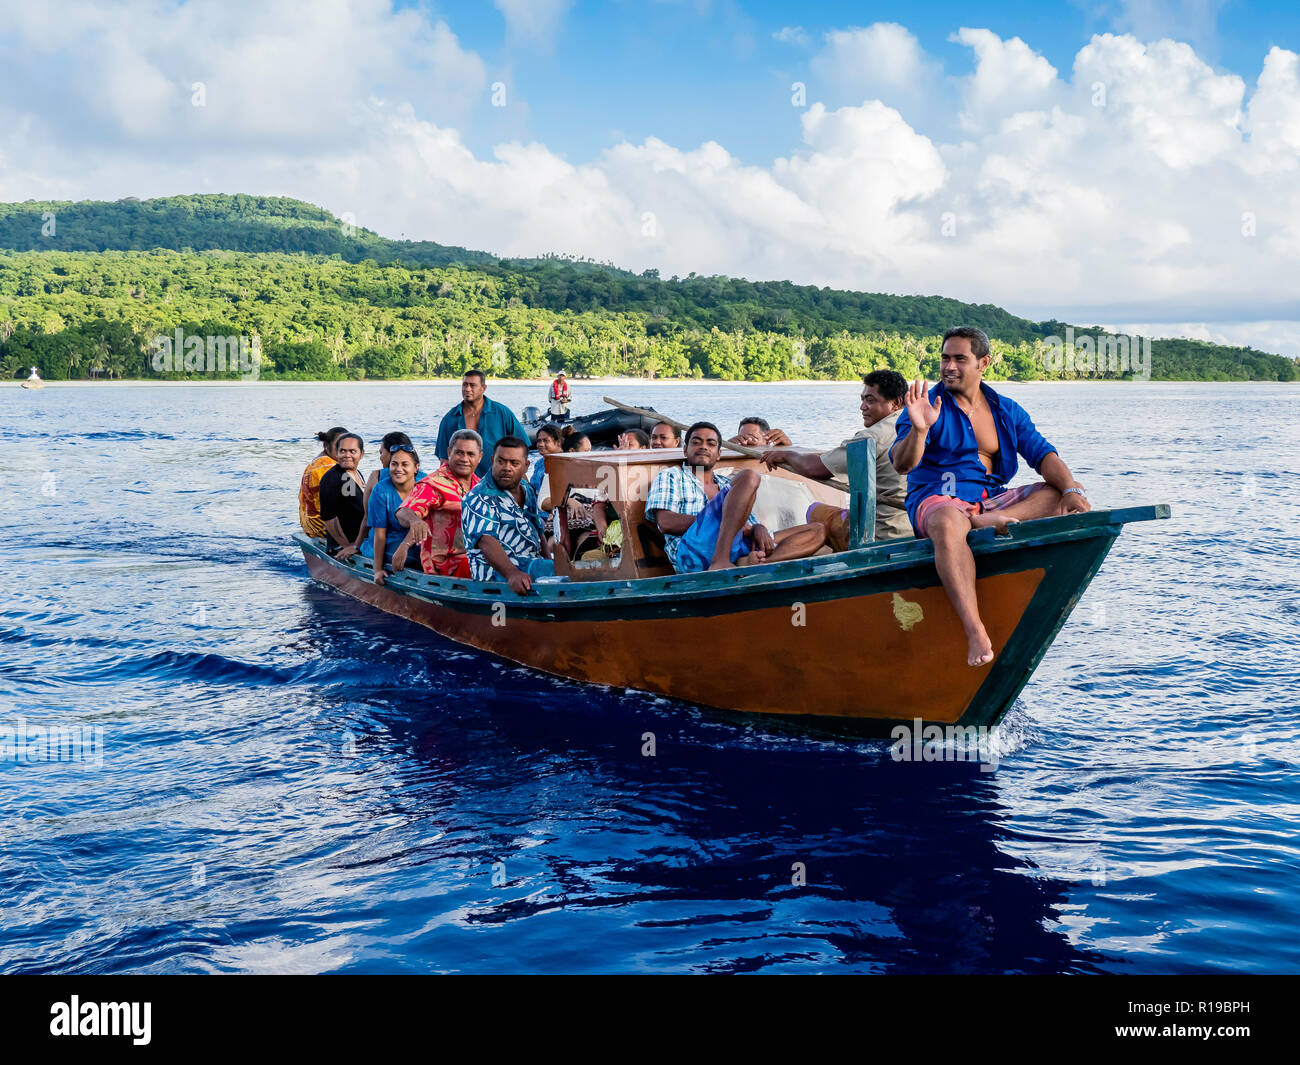 Local people in wooden boat from the Island of Alofi, French Territory of Wallis and Futuna Islands. - Stock Image